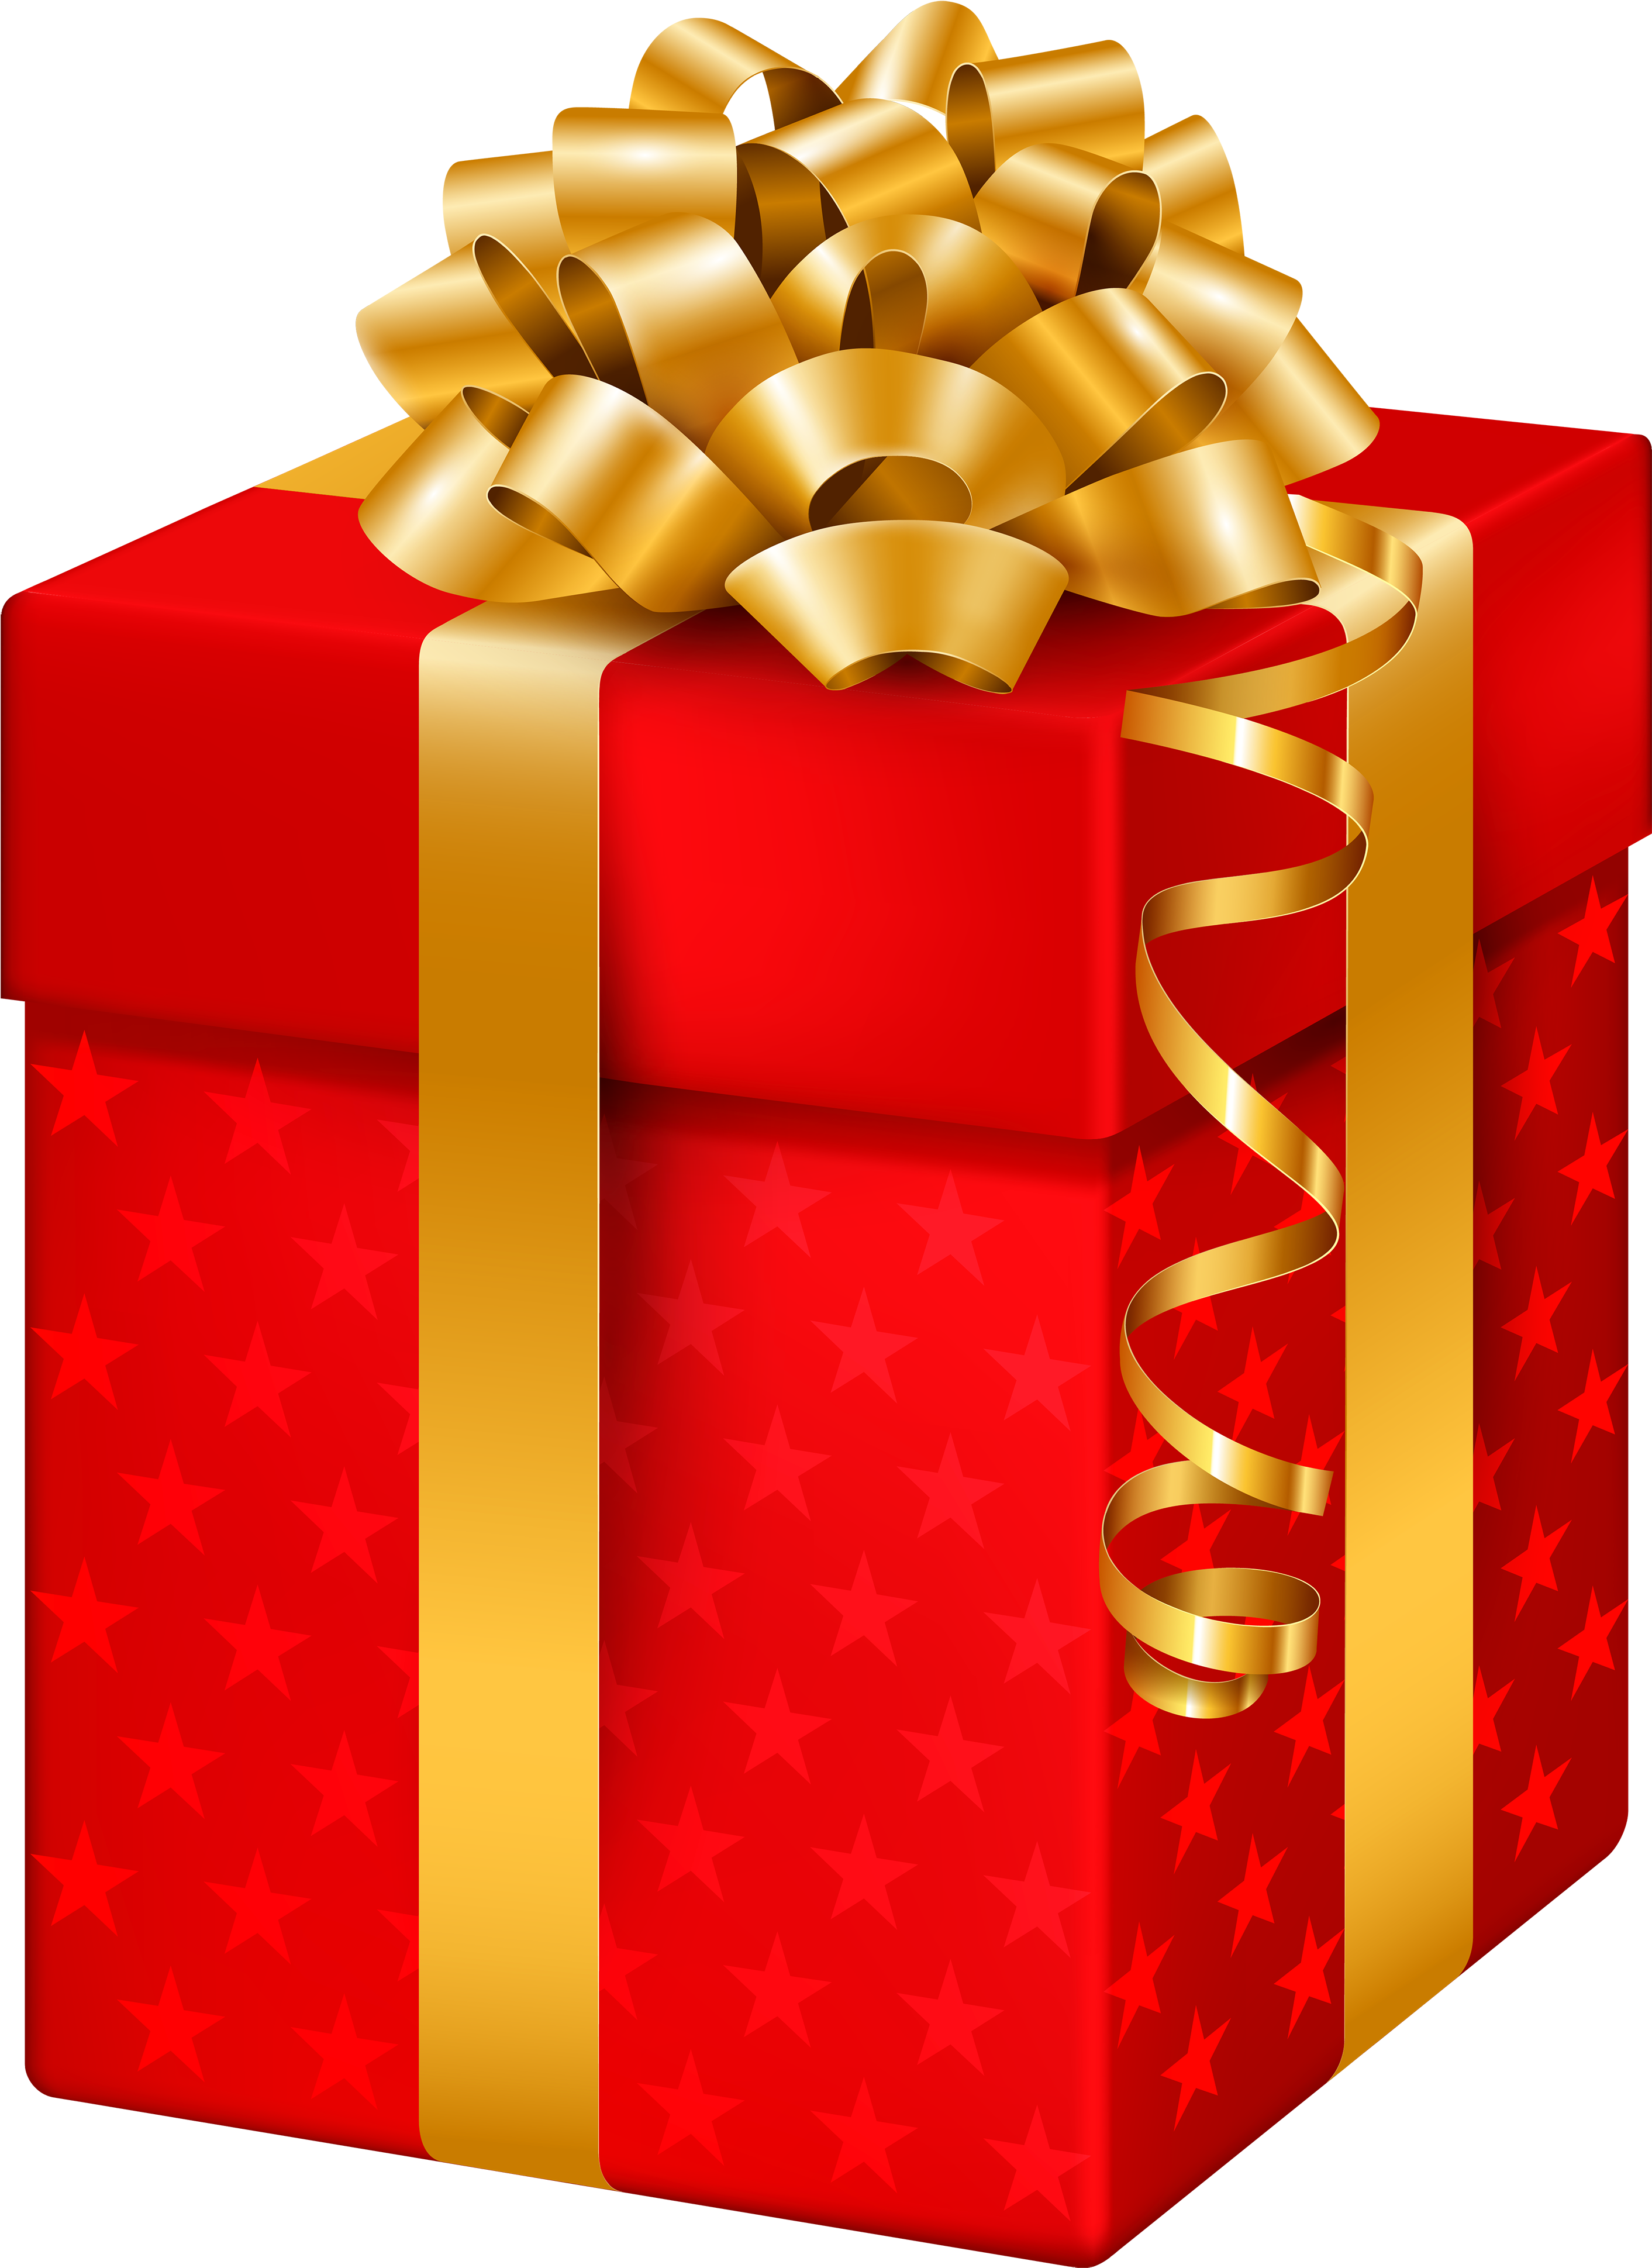 Download Red Gift Box With Stars Png Clipart Clipart Of Christmas Gifts Png Image With No Background Pngkey Com